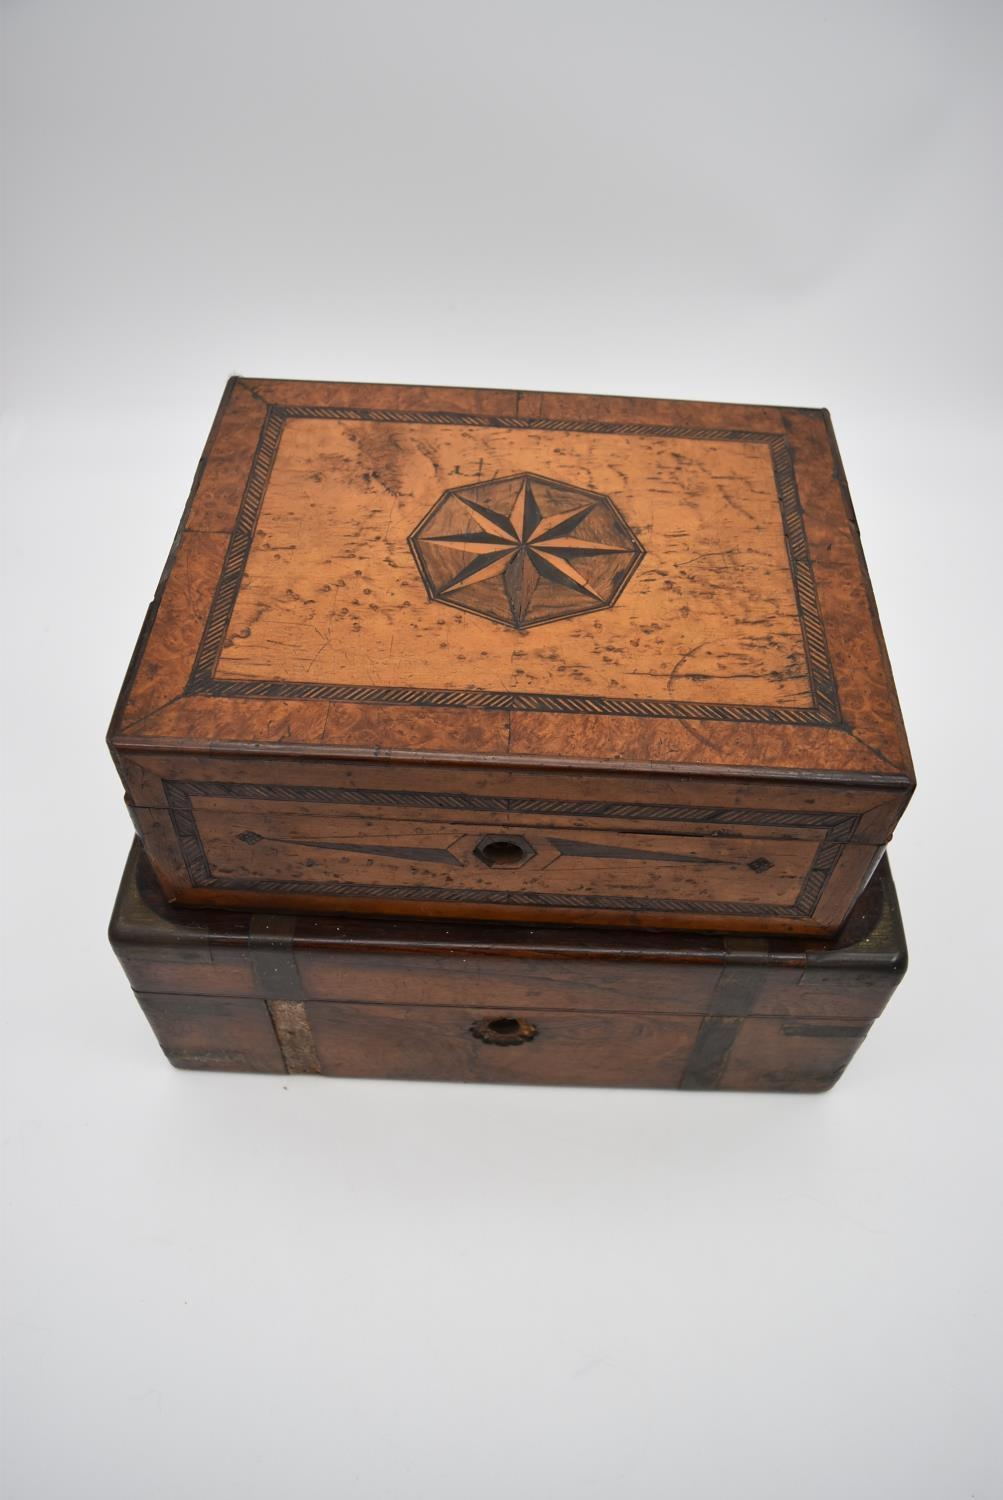 A 19th century yew, bird's eye maple, ebony and satinwood inlaid jewellery box and a 19th century - Image 2 of 4